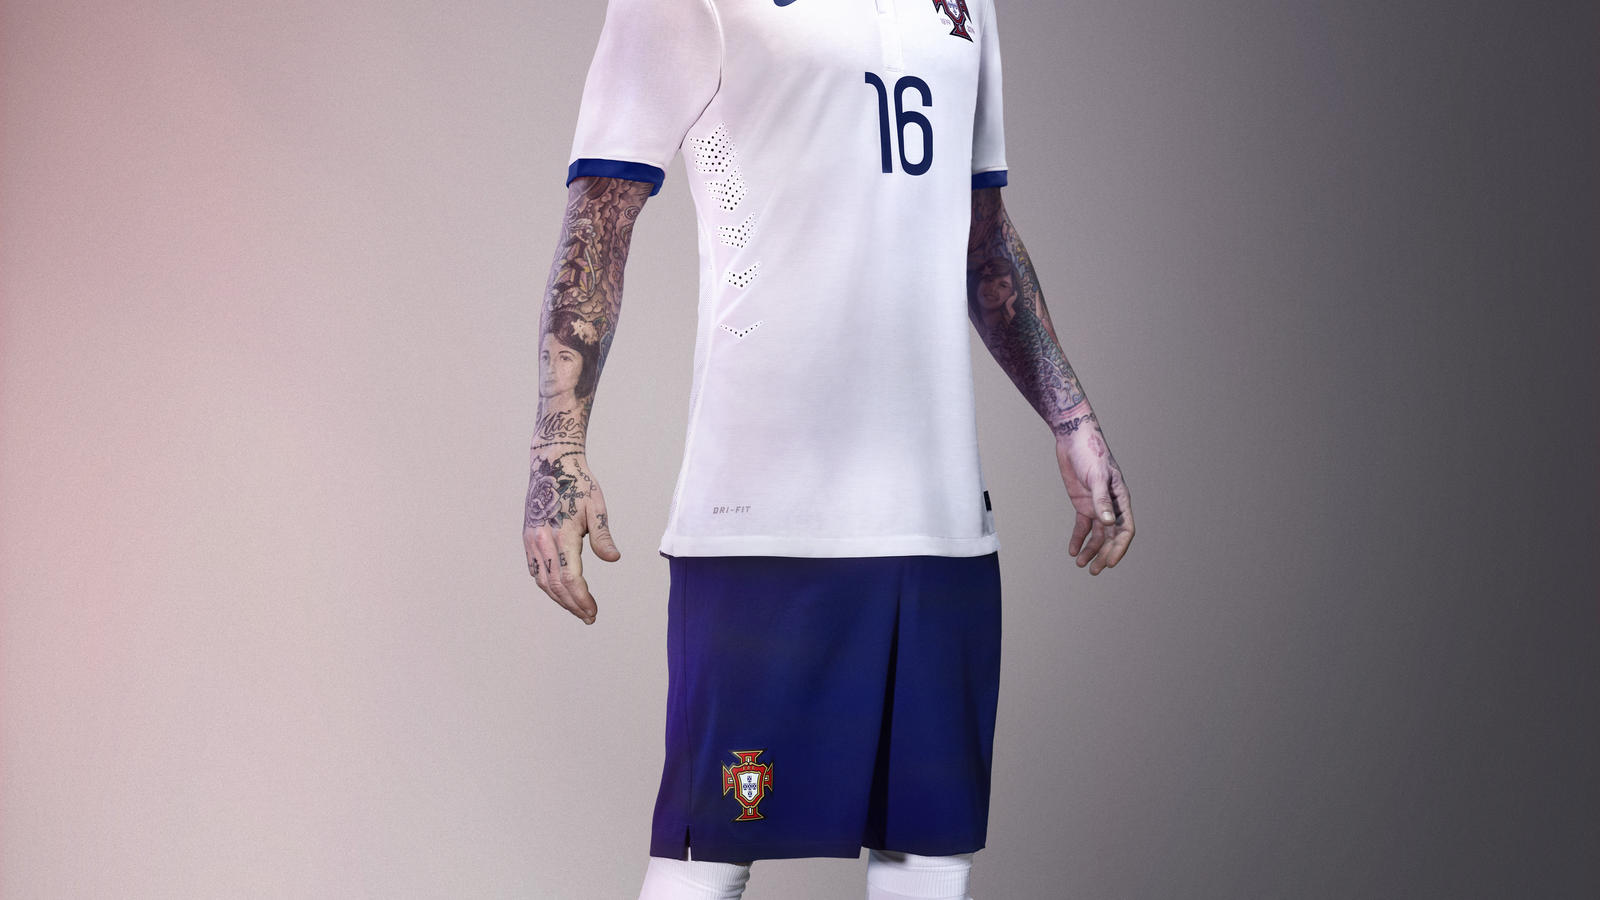 Raul Meireles in the new Portugal away kit